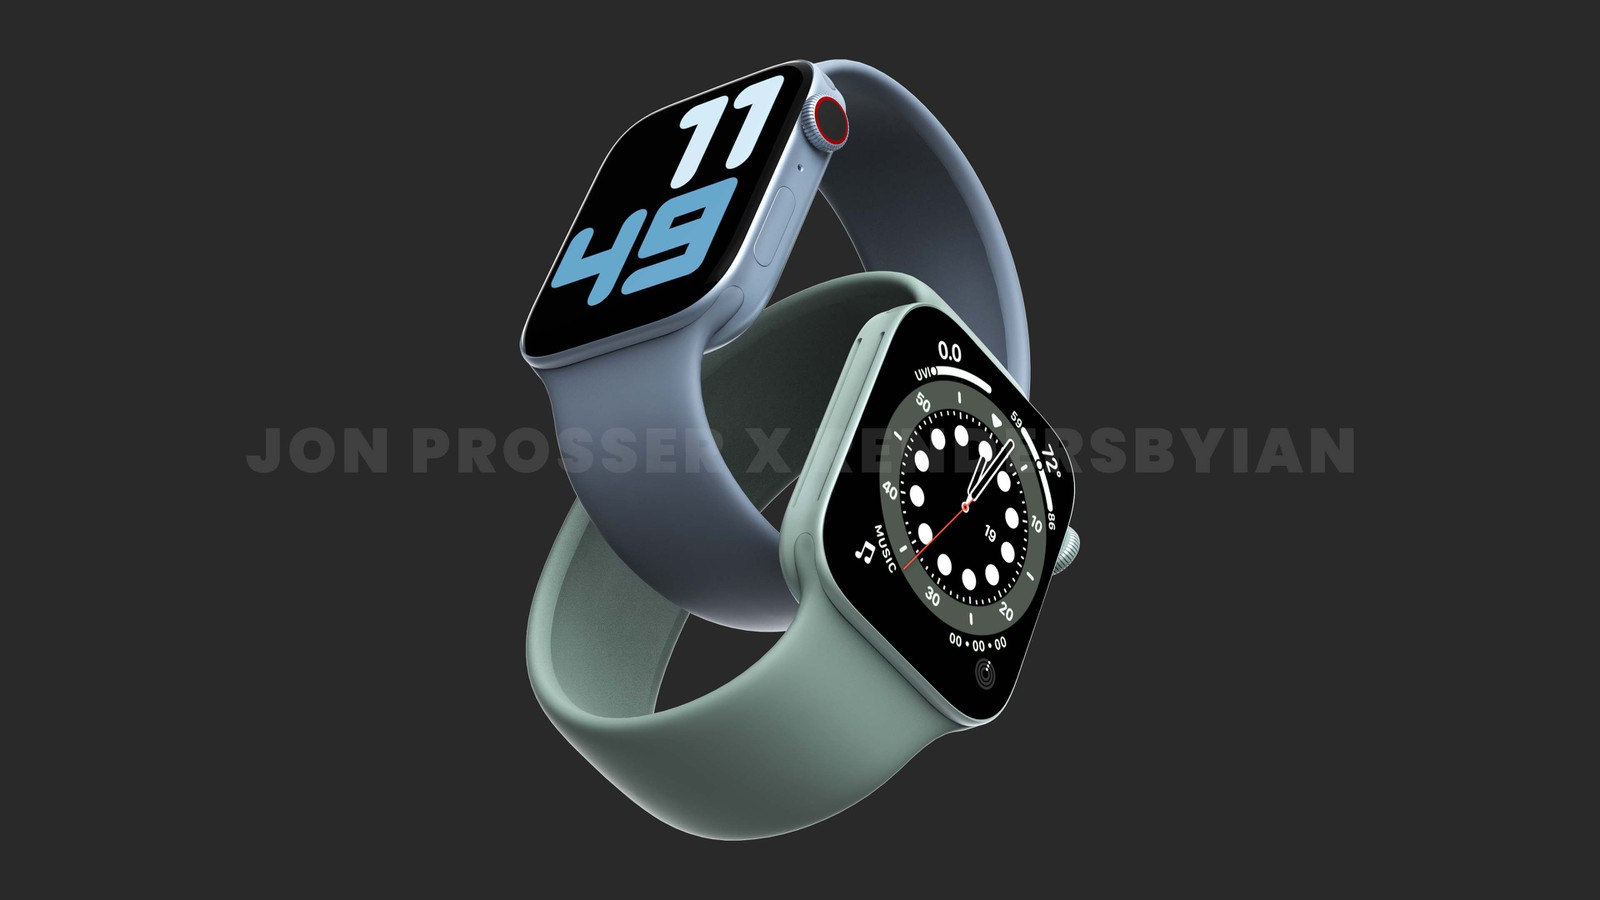 Apple Watch Series 7 flat screen, larger case up to 41mm and 45mm.